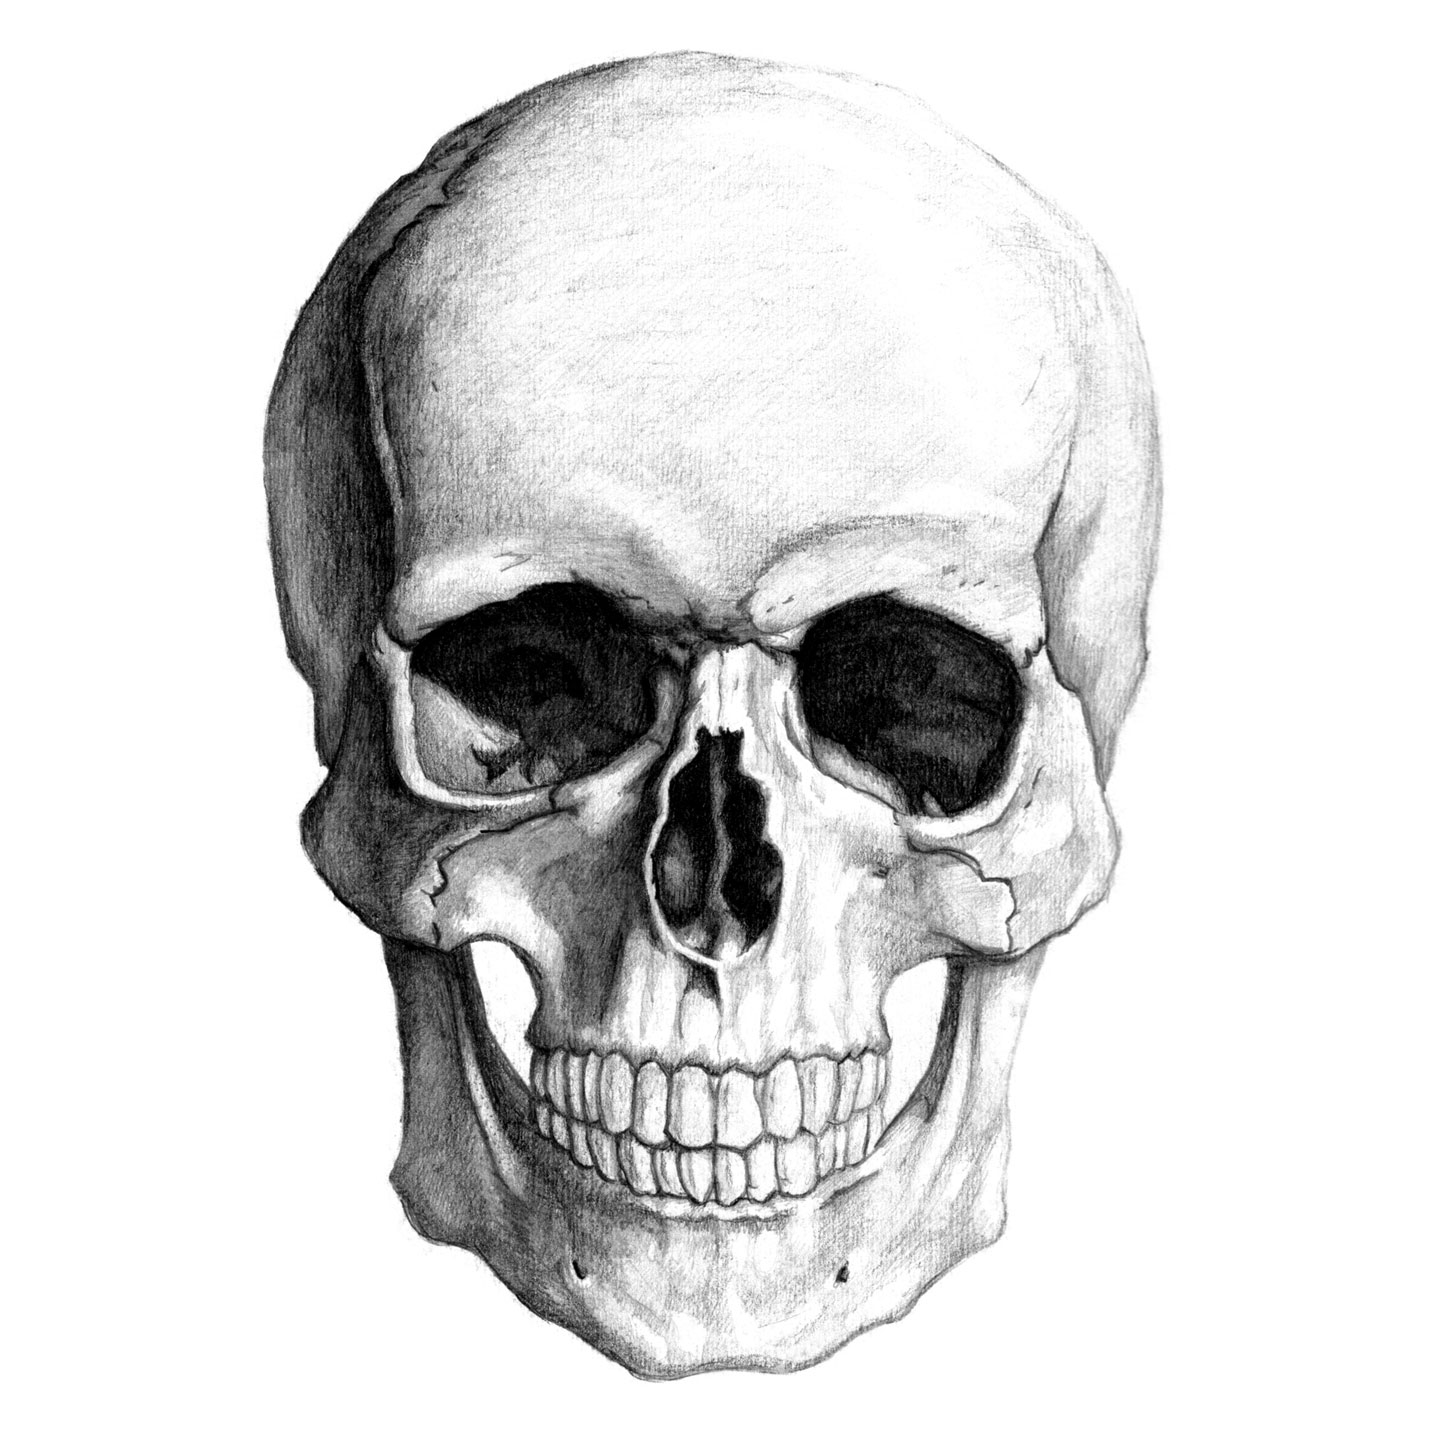 Kernie Cam Productions: Gallery: Skull Pencil Drawing: www.kerniecamproductions.com/gallery.php?pg=project&sub...